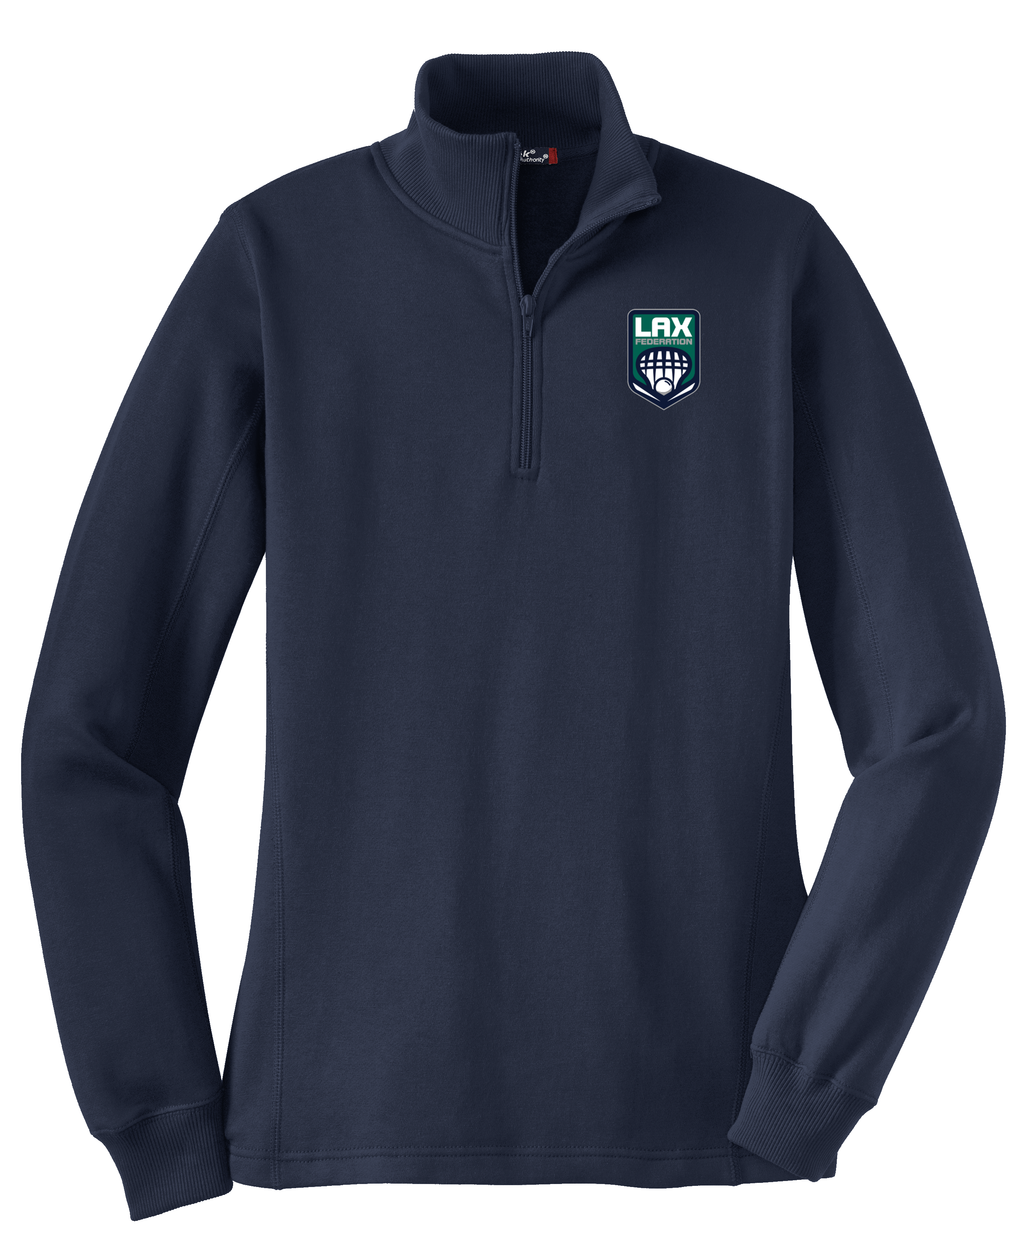 LAX FED Women's 1/4 Zip Fleece